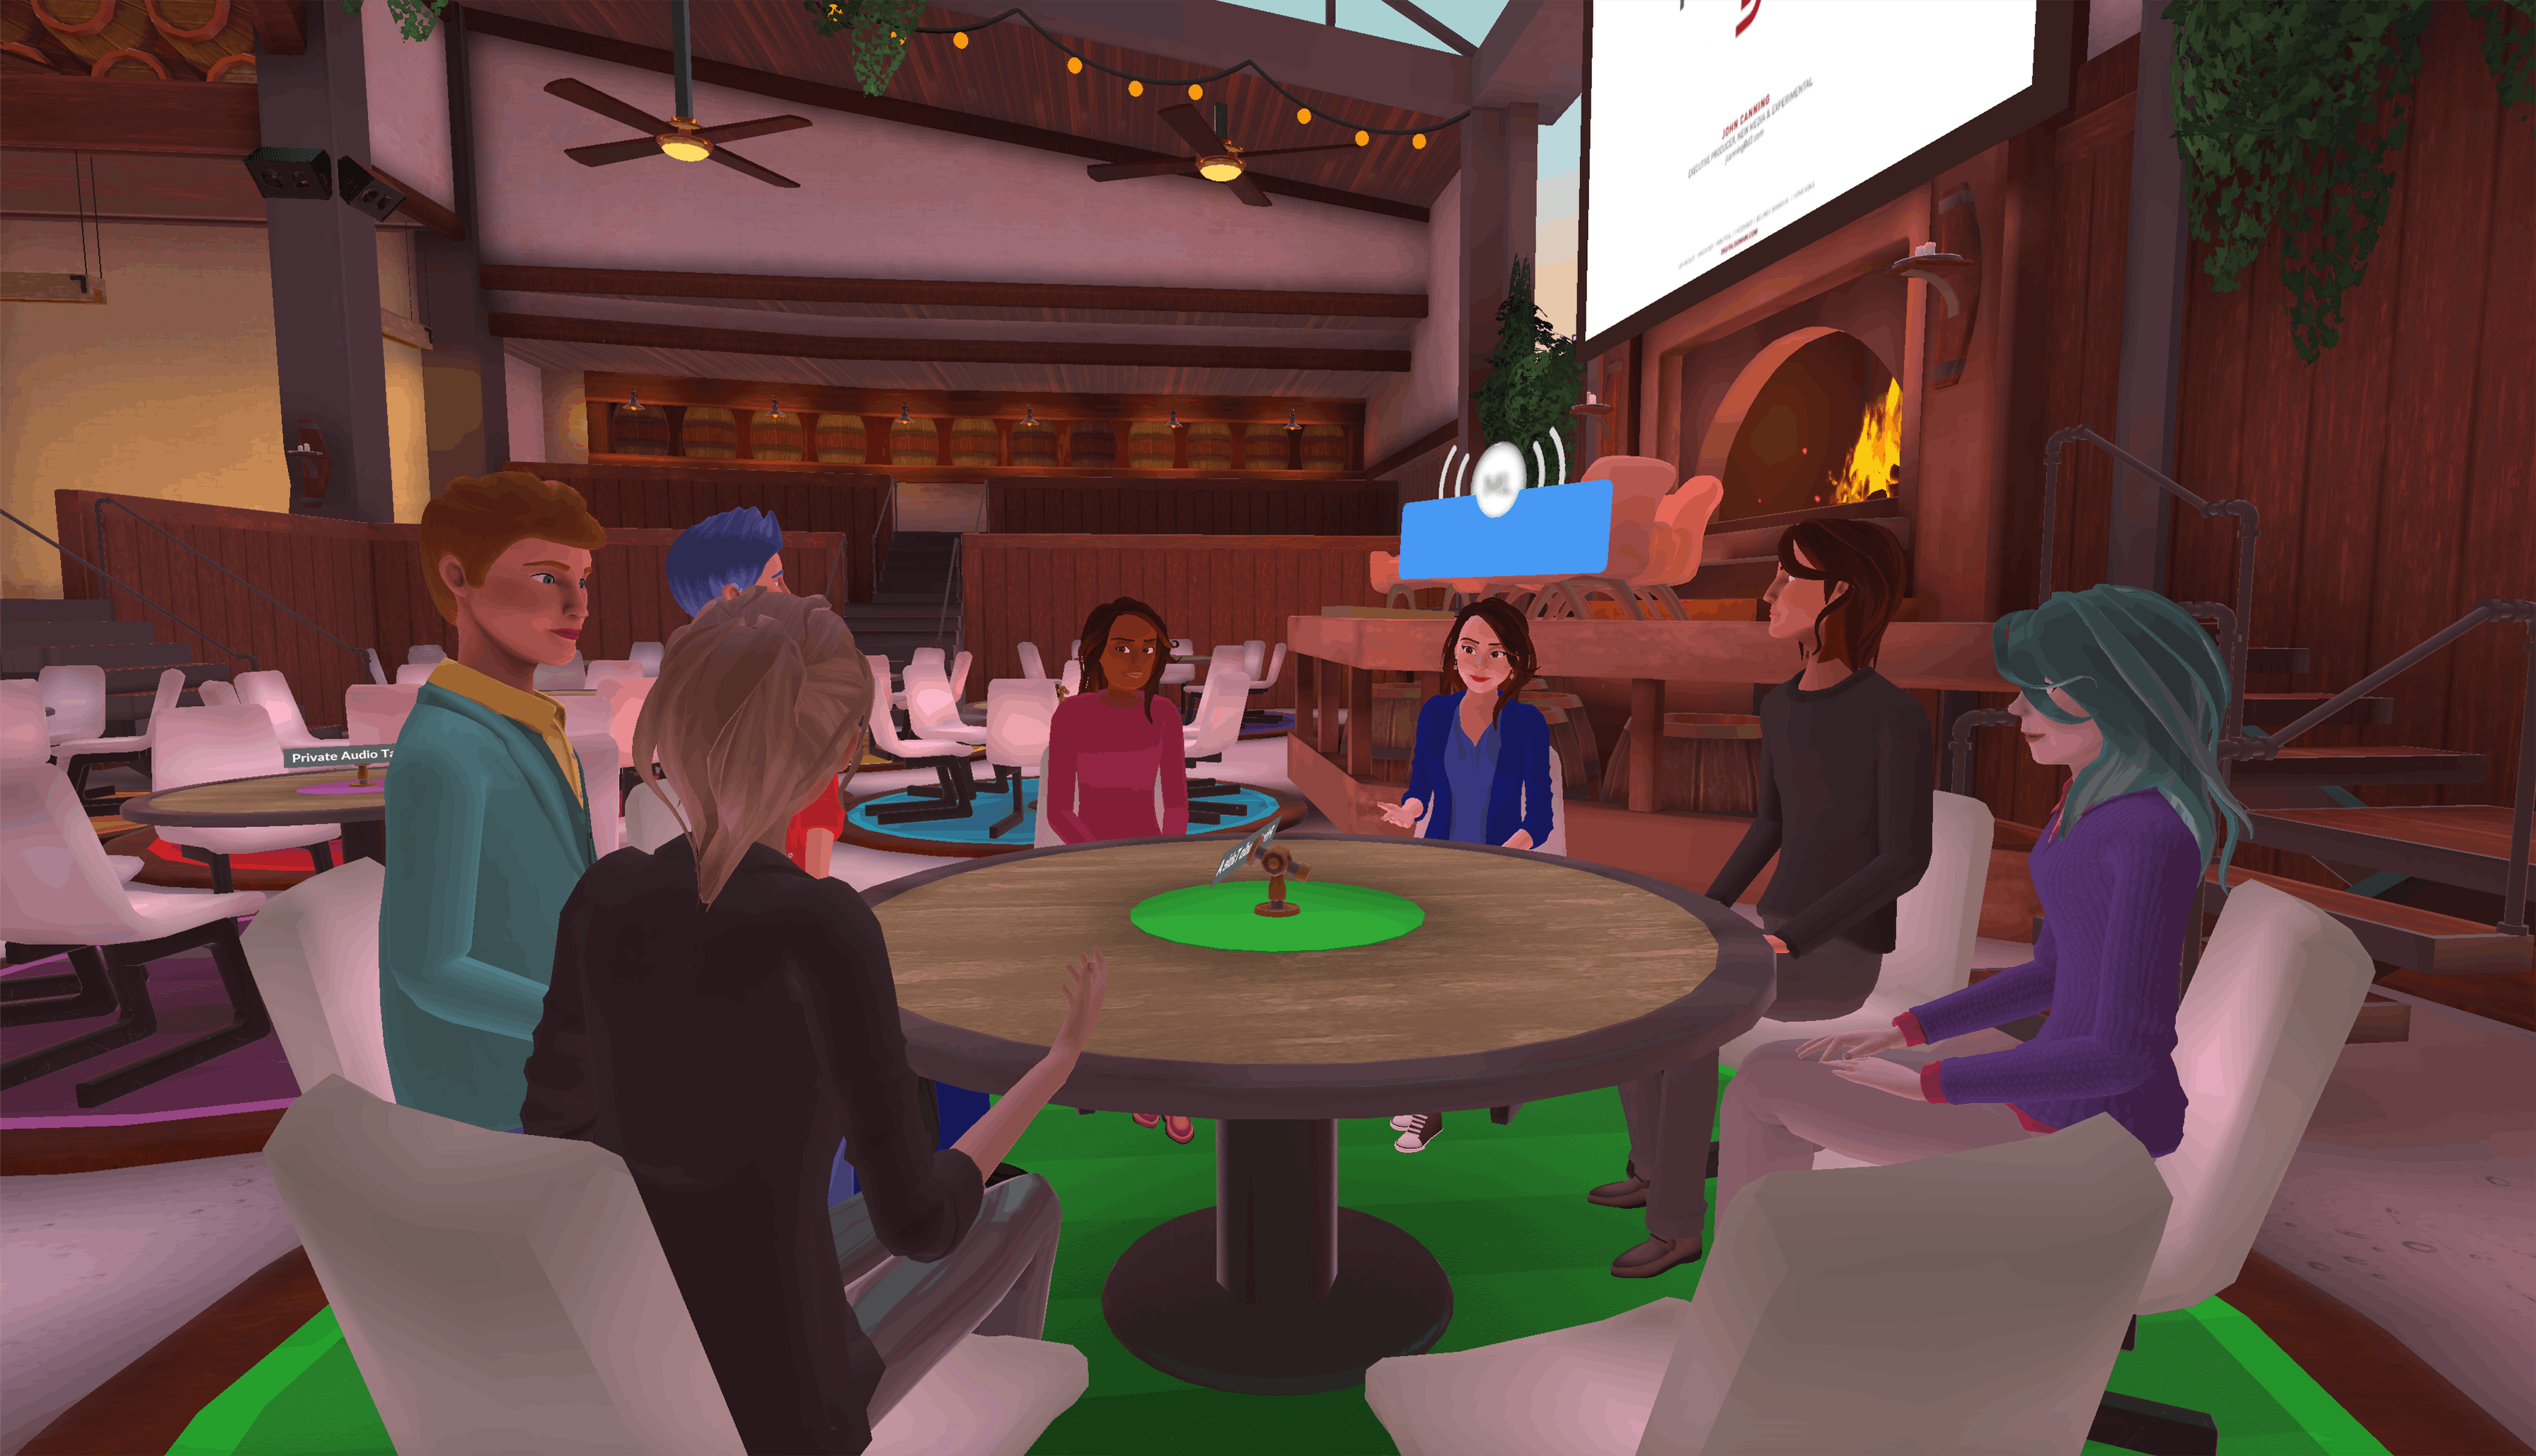 socialise and interact post-workshop in Teooh's avatar-based virtual reality platform